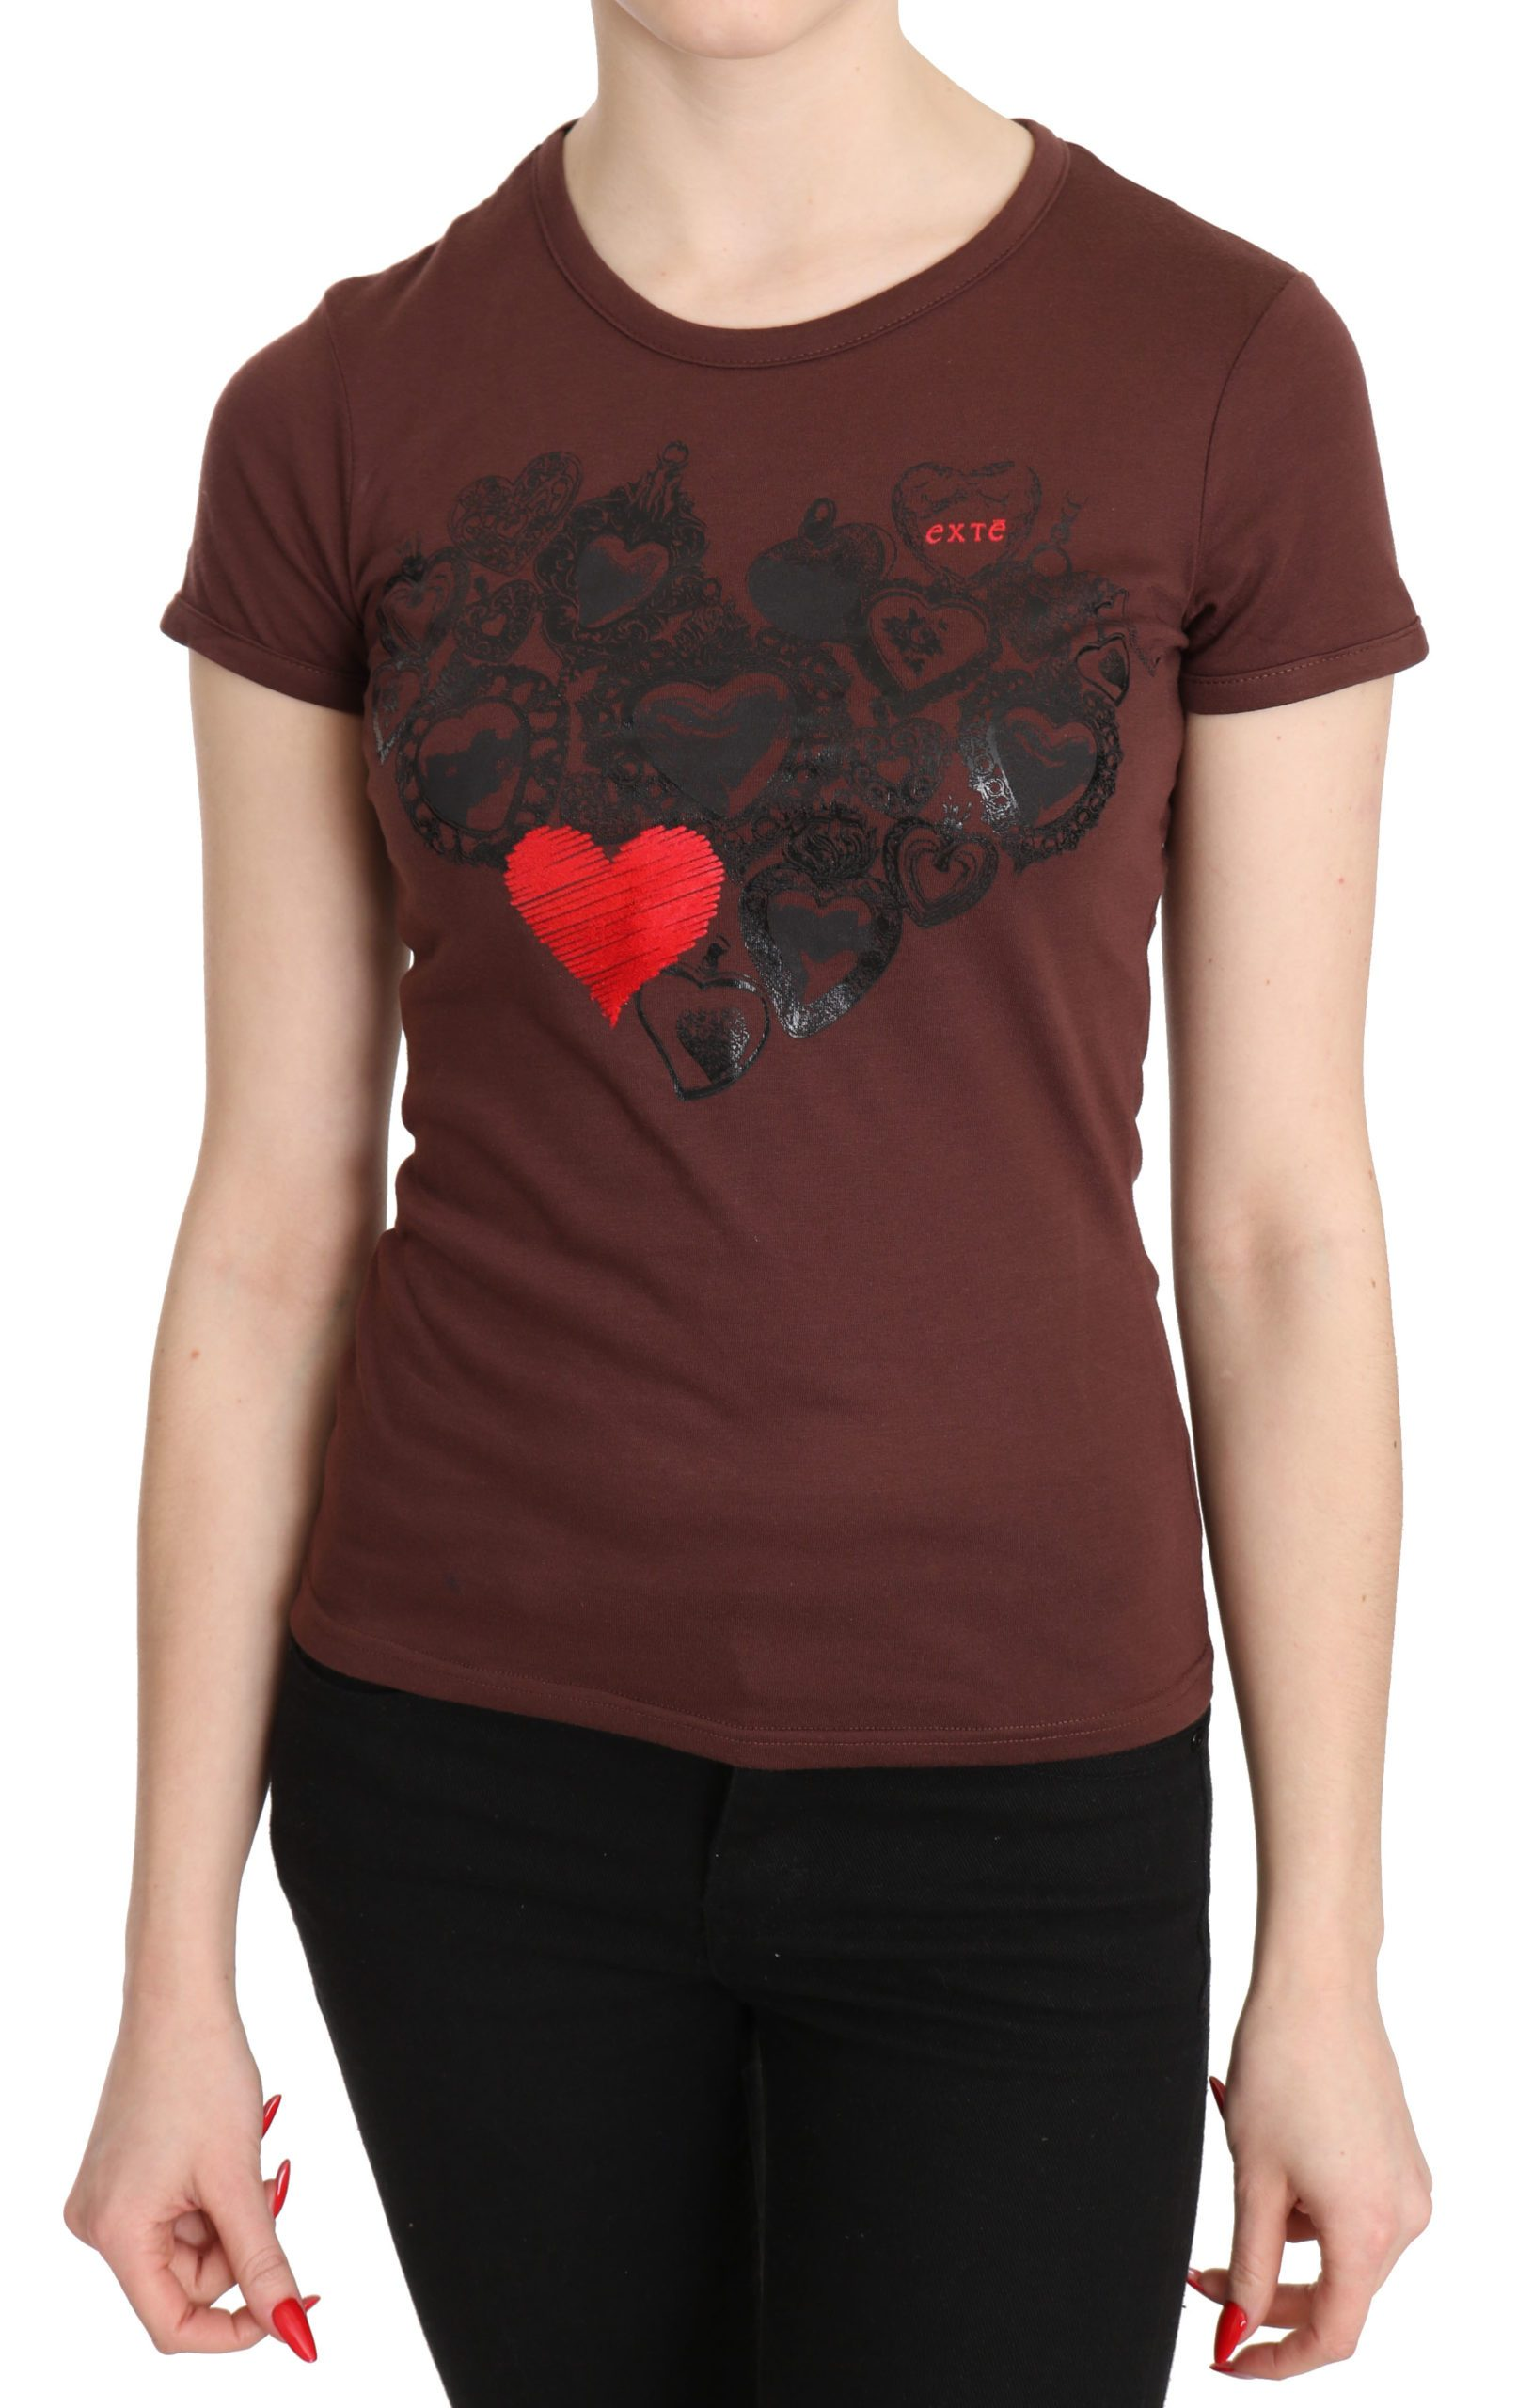 Exte Women's Hearts Printed Round Neck T-Shirt Top Brown TSH3419 - IT42|M